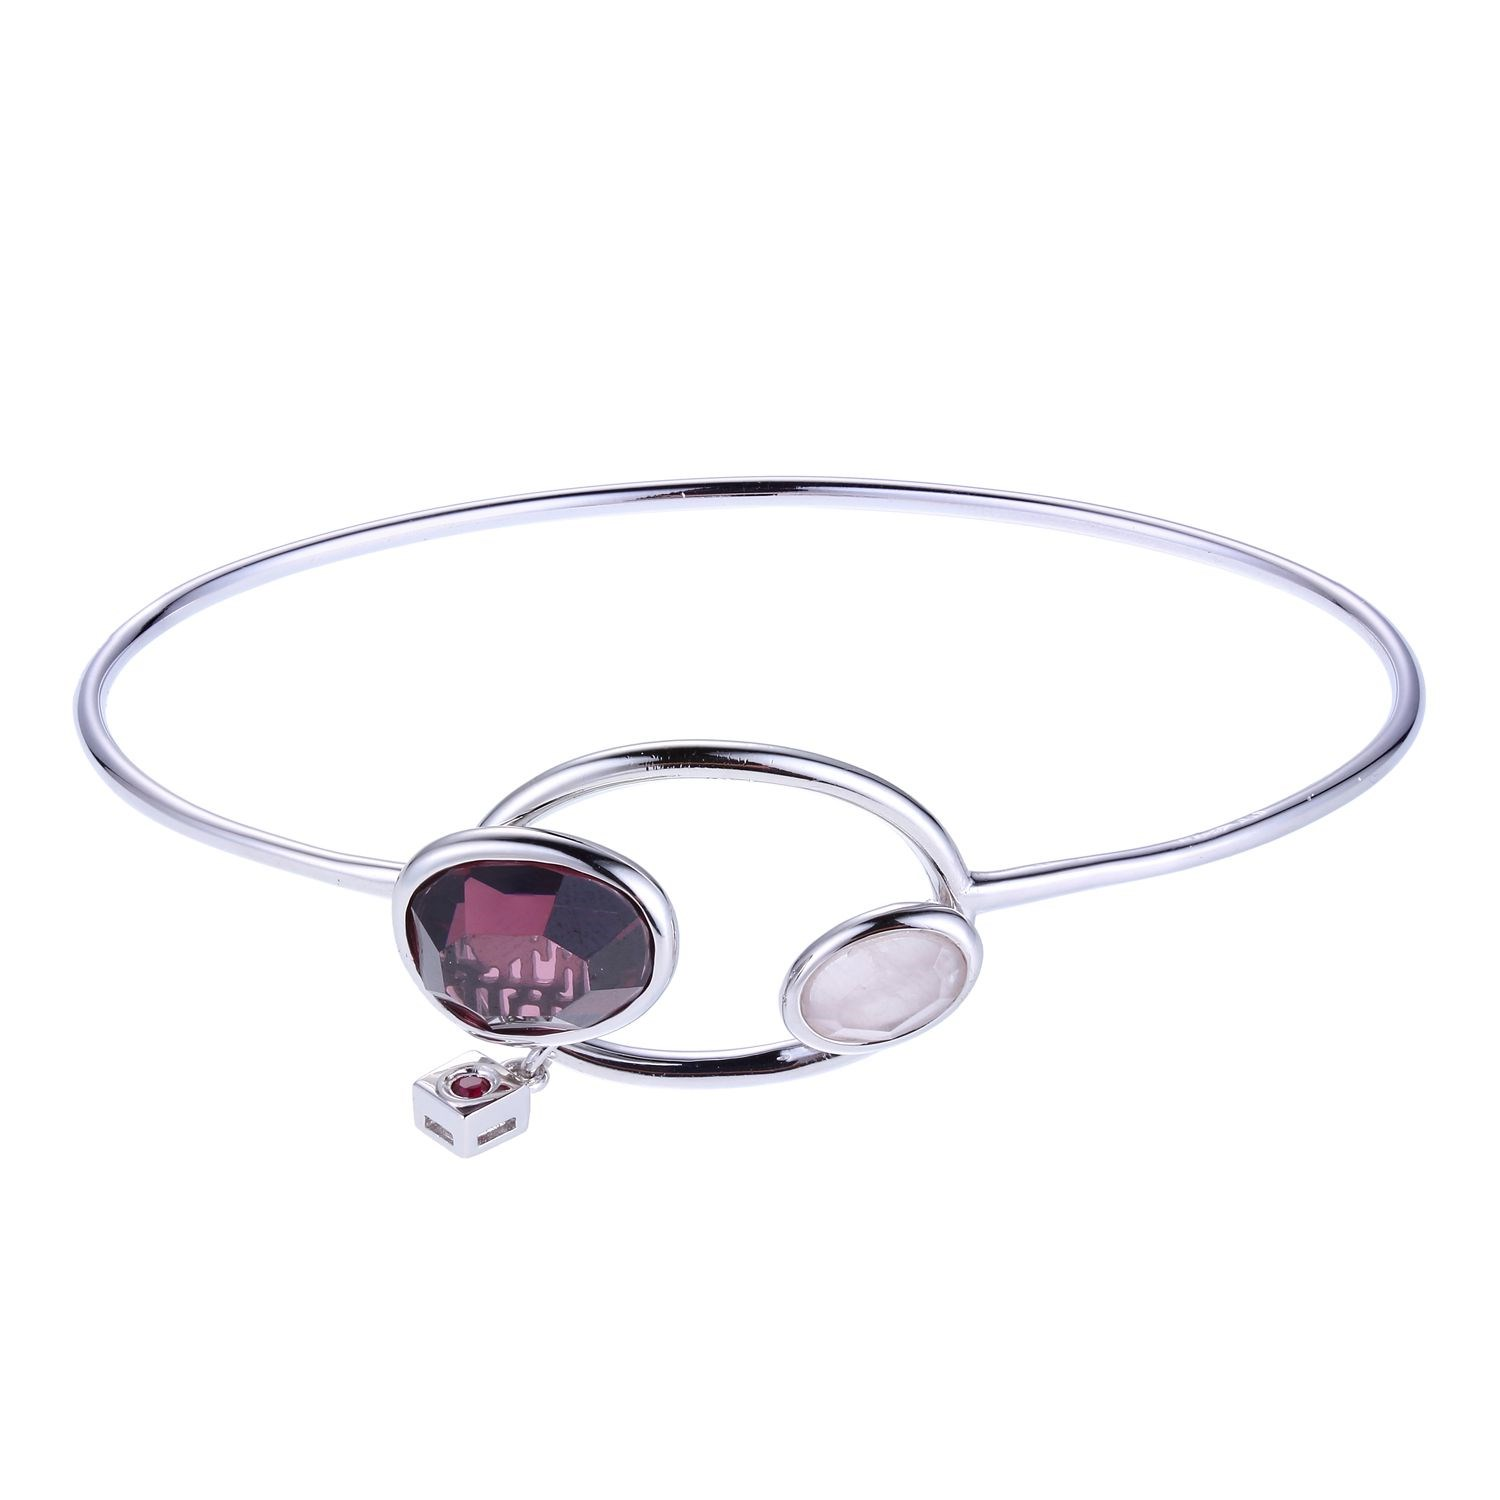 "Elle Sterling Silver Bangle Length 7.25"" with Smokey CZ & Rose Quartz by Elle Jewelry"